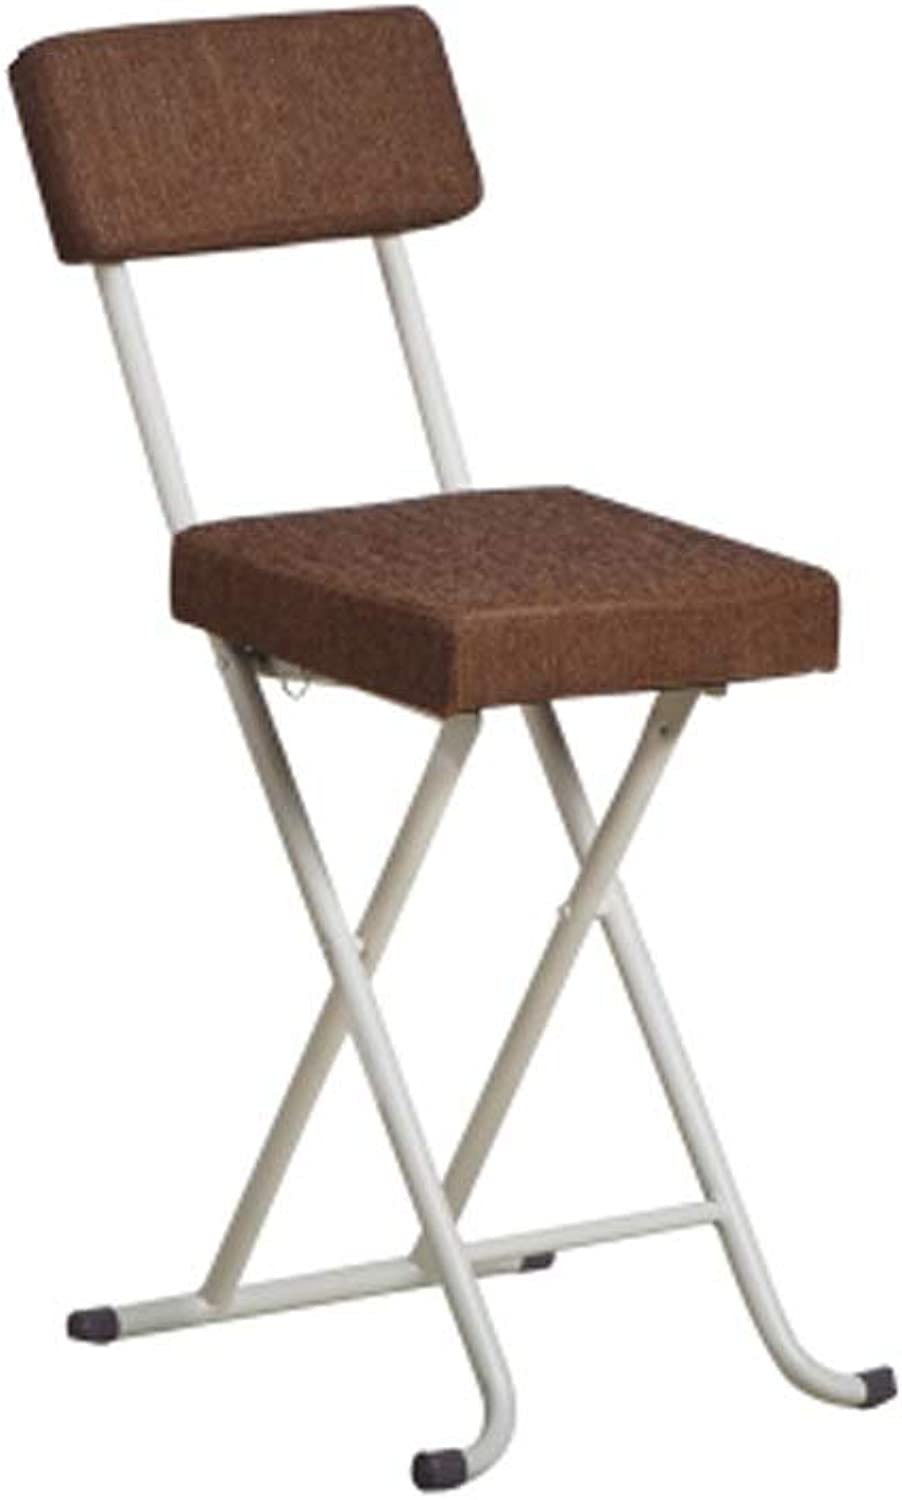 Barstool Nordic Wrought Iron Folding Chair Home Back Simple Portable White Black 35  34  75cm (color   Brown)